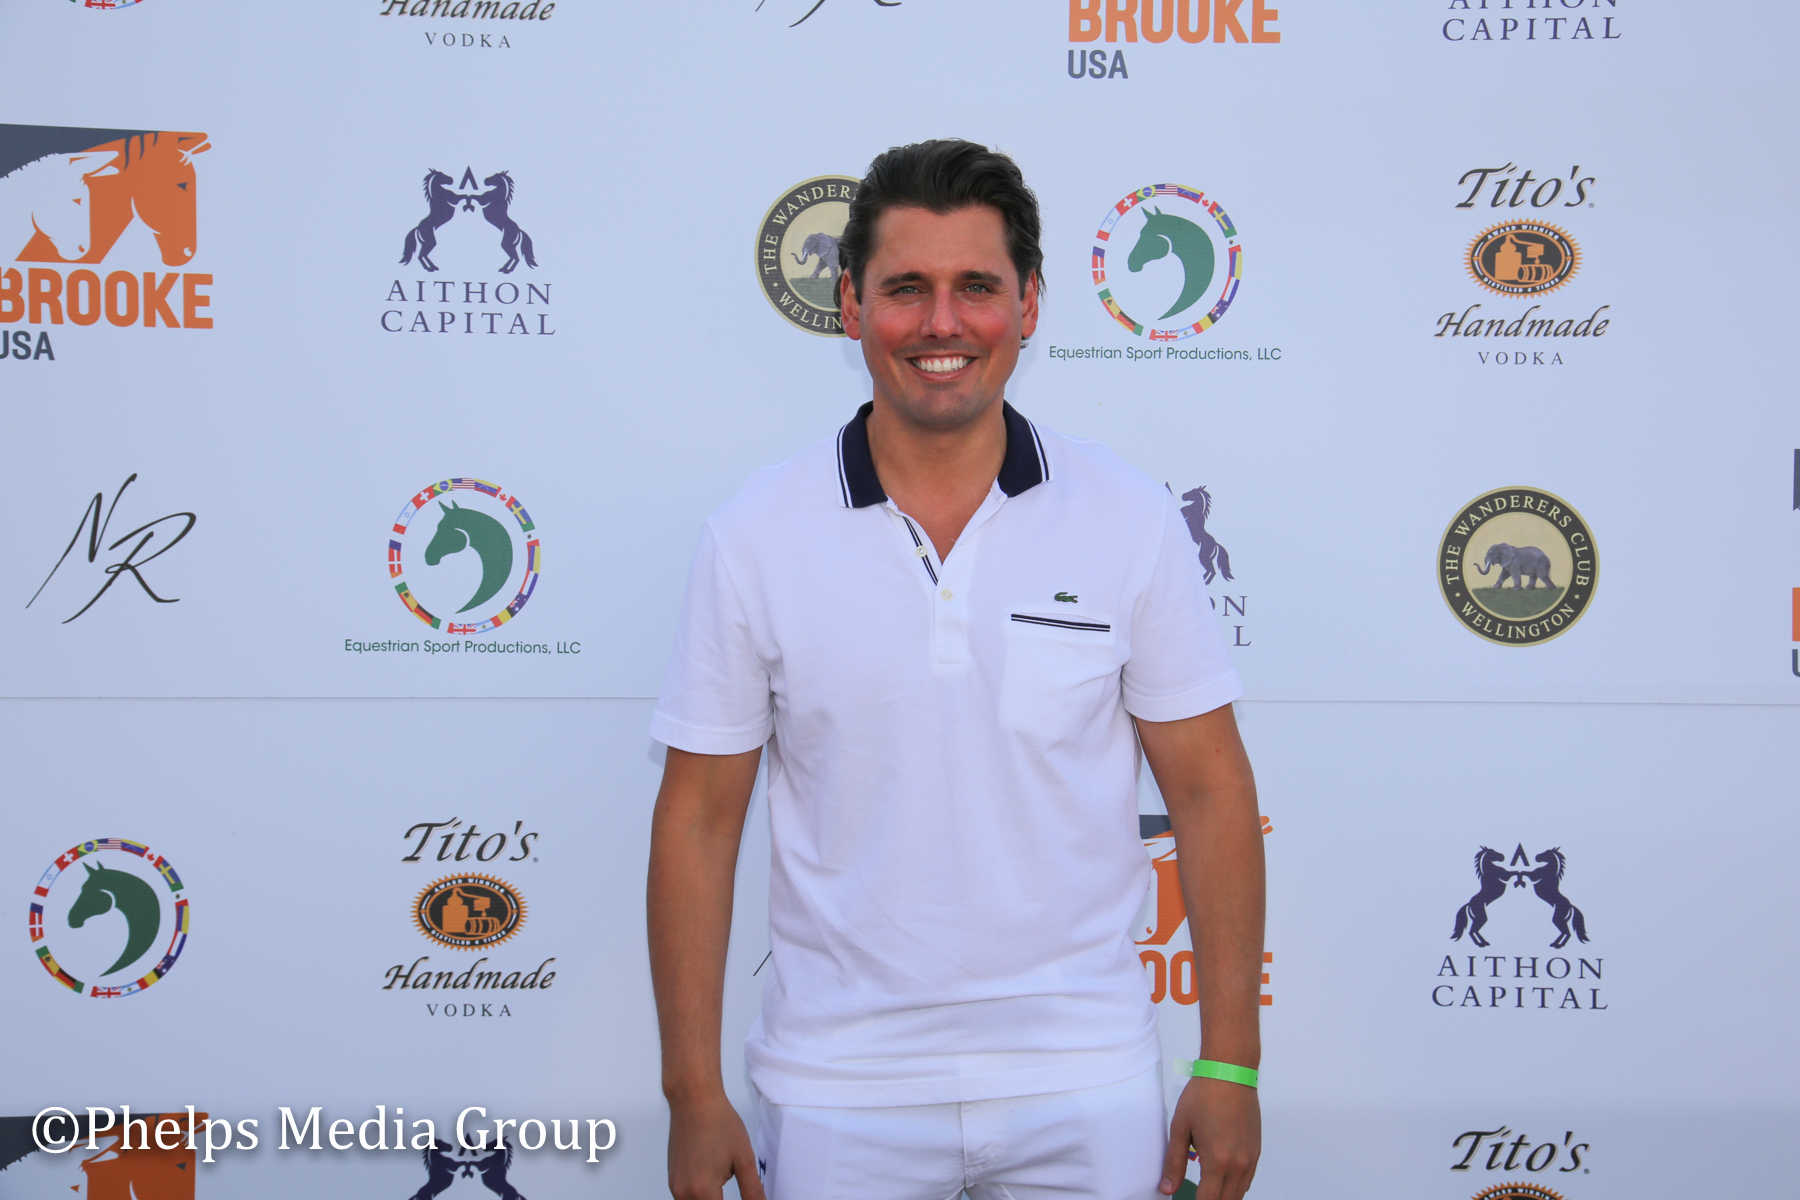 Eric Amat; Nic Roldan's 2nd Annual Sunset Polo & White Party, FL, by Phelps Media.jpg